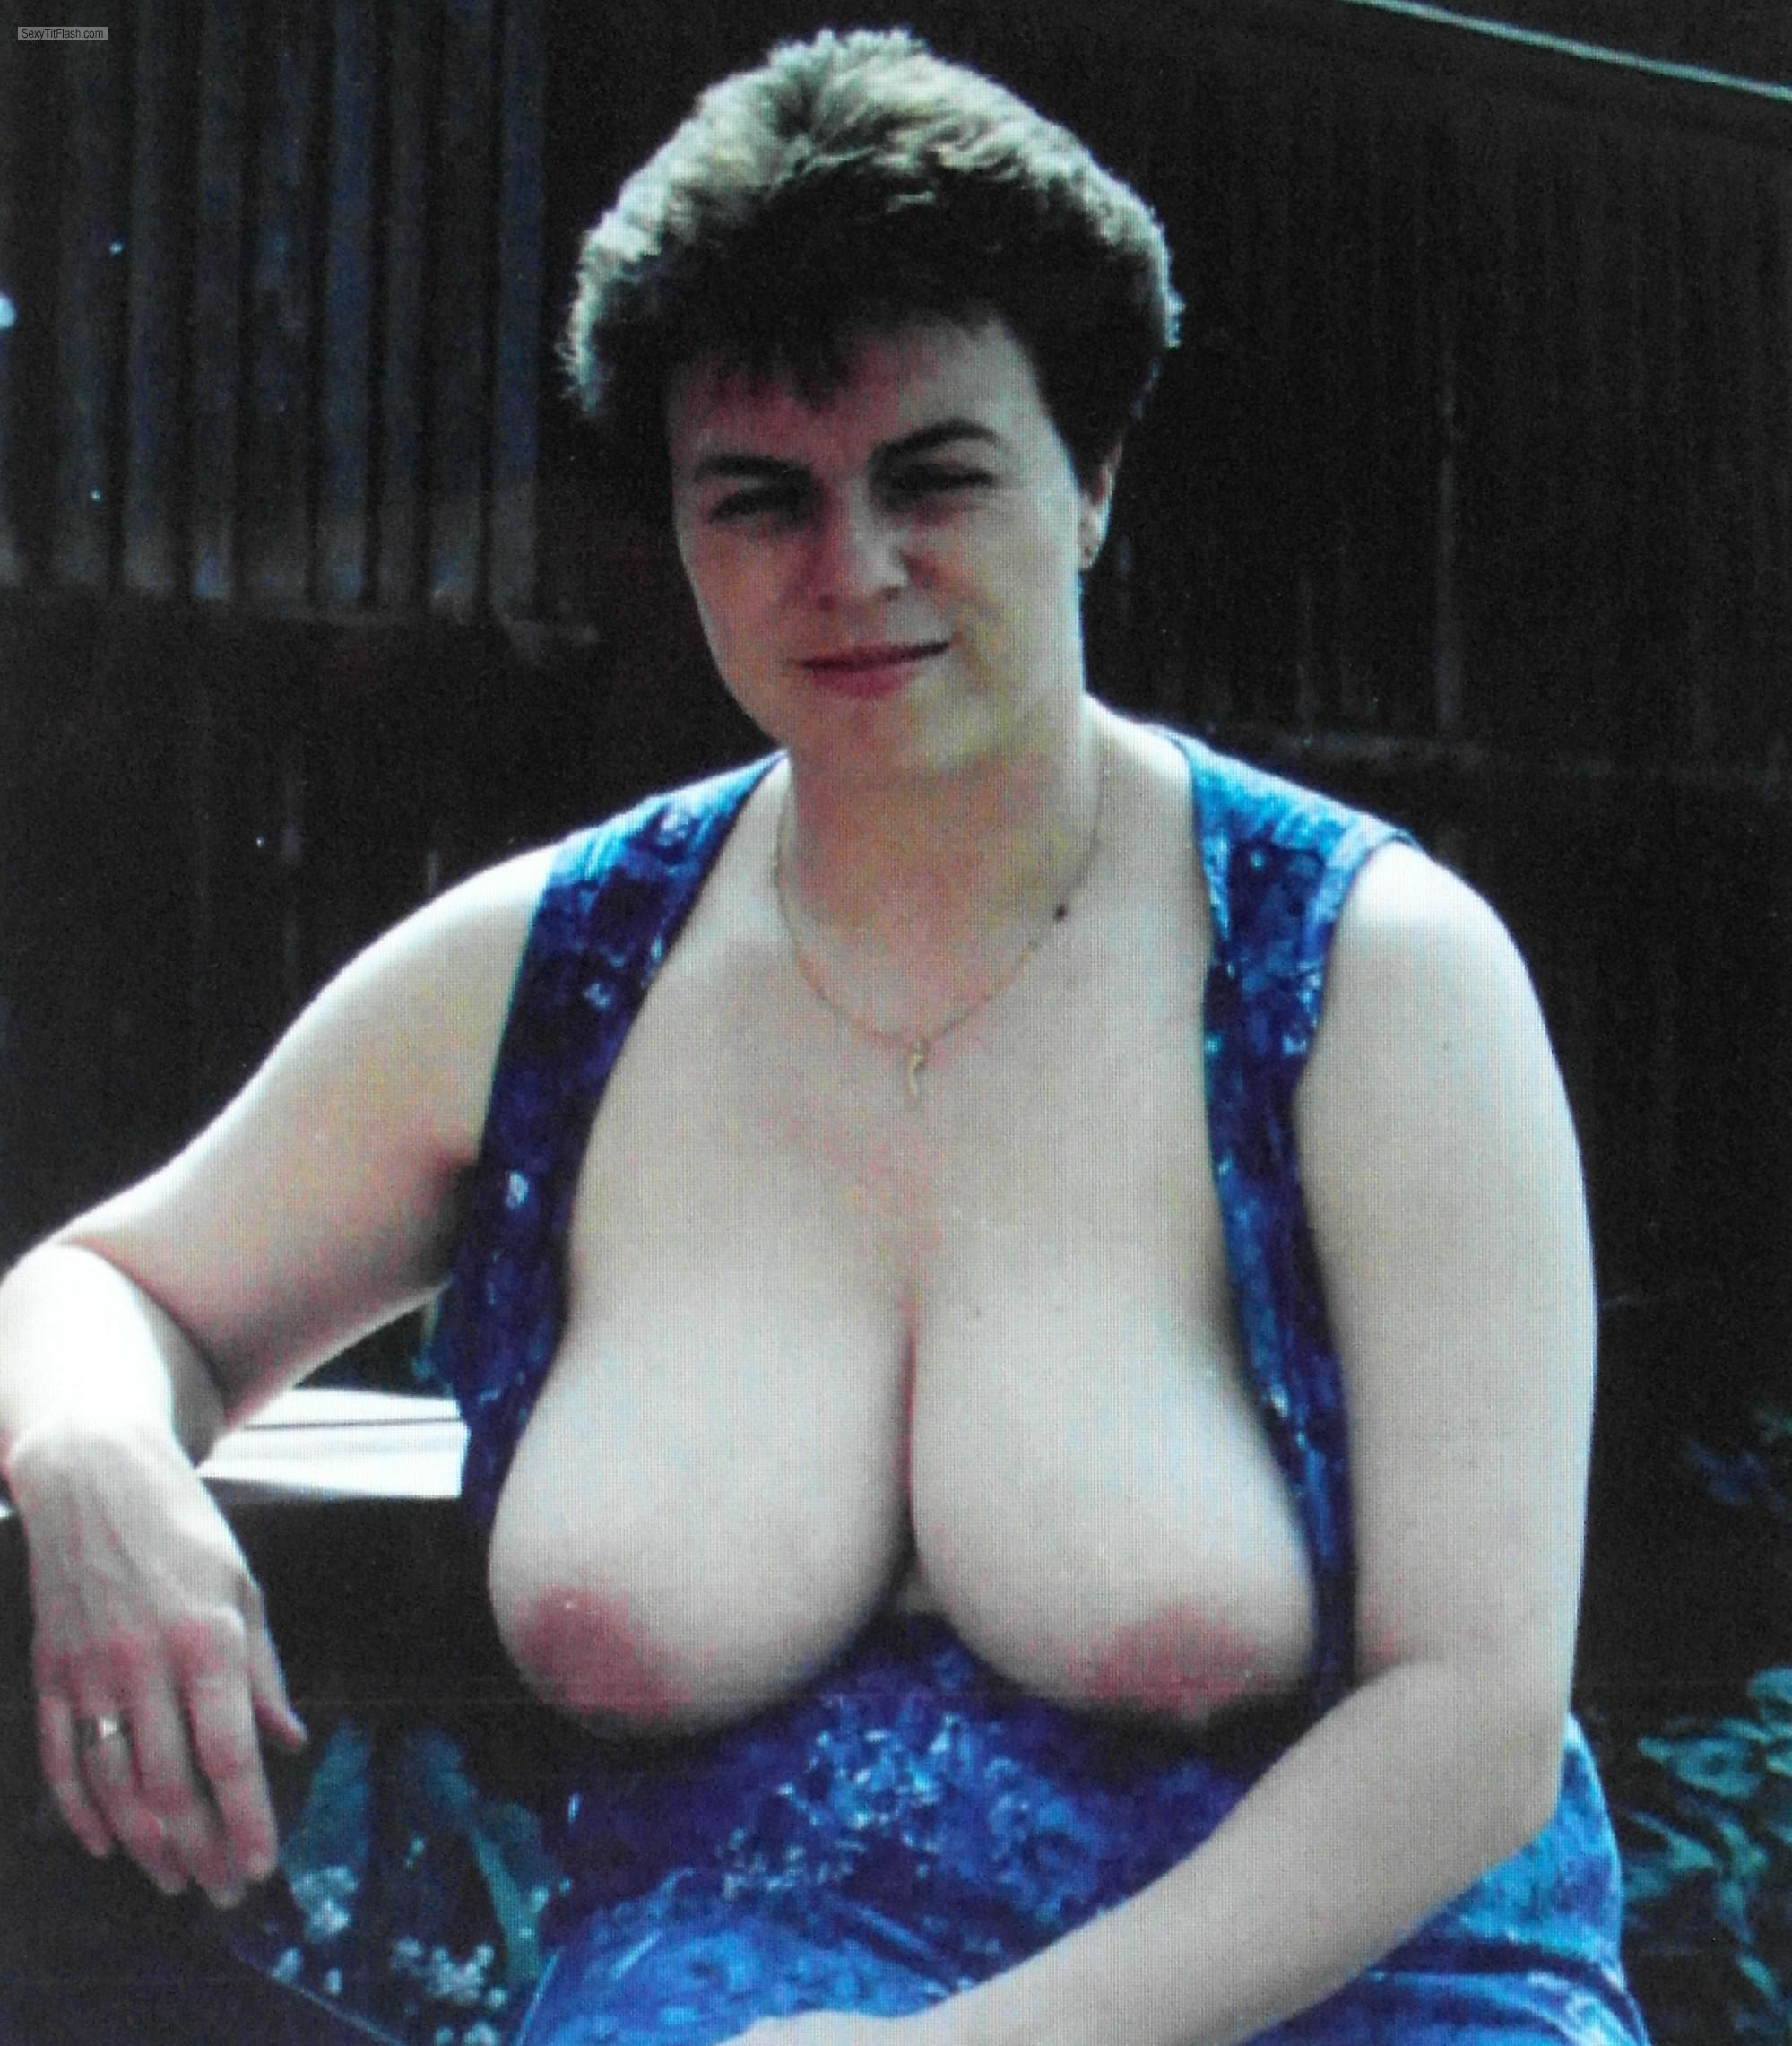 Very big Tits Of A Friend Topless Retro Nude